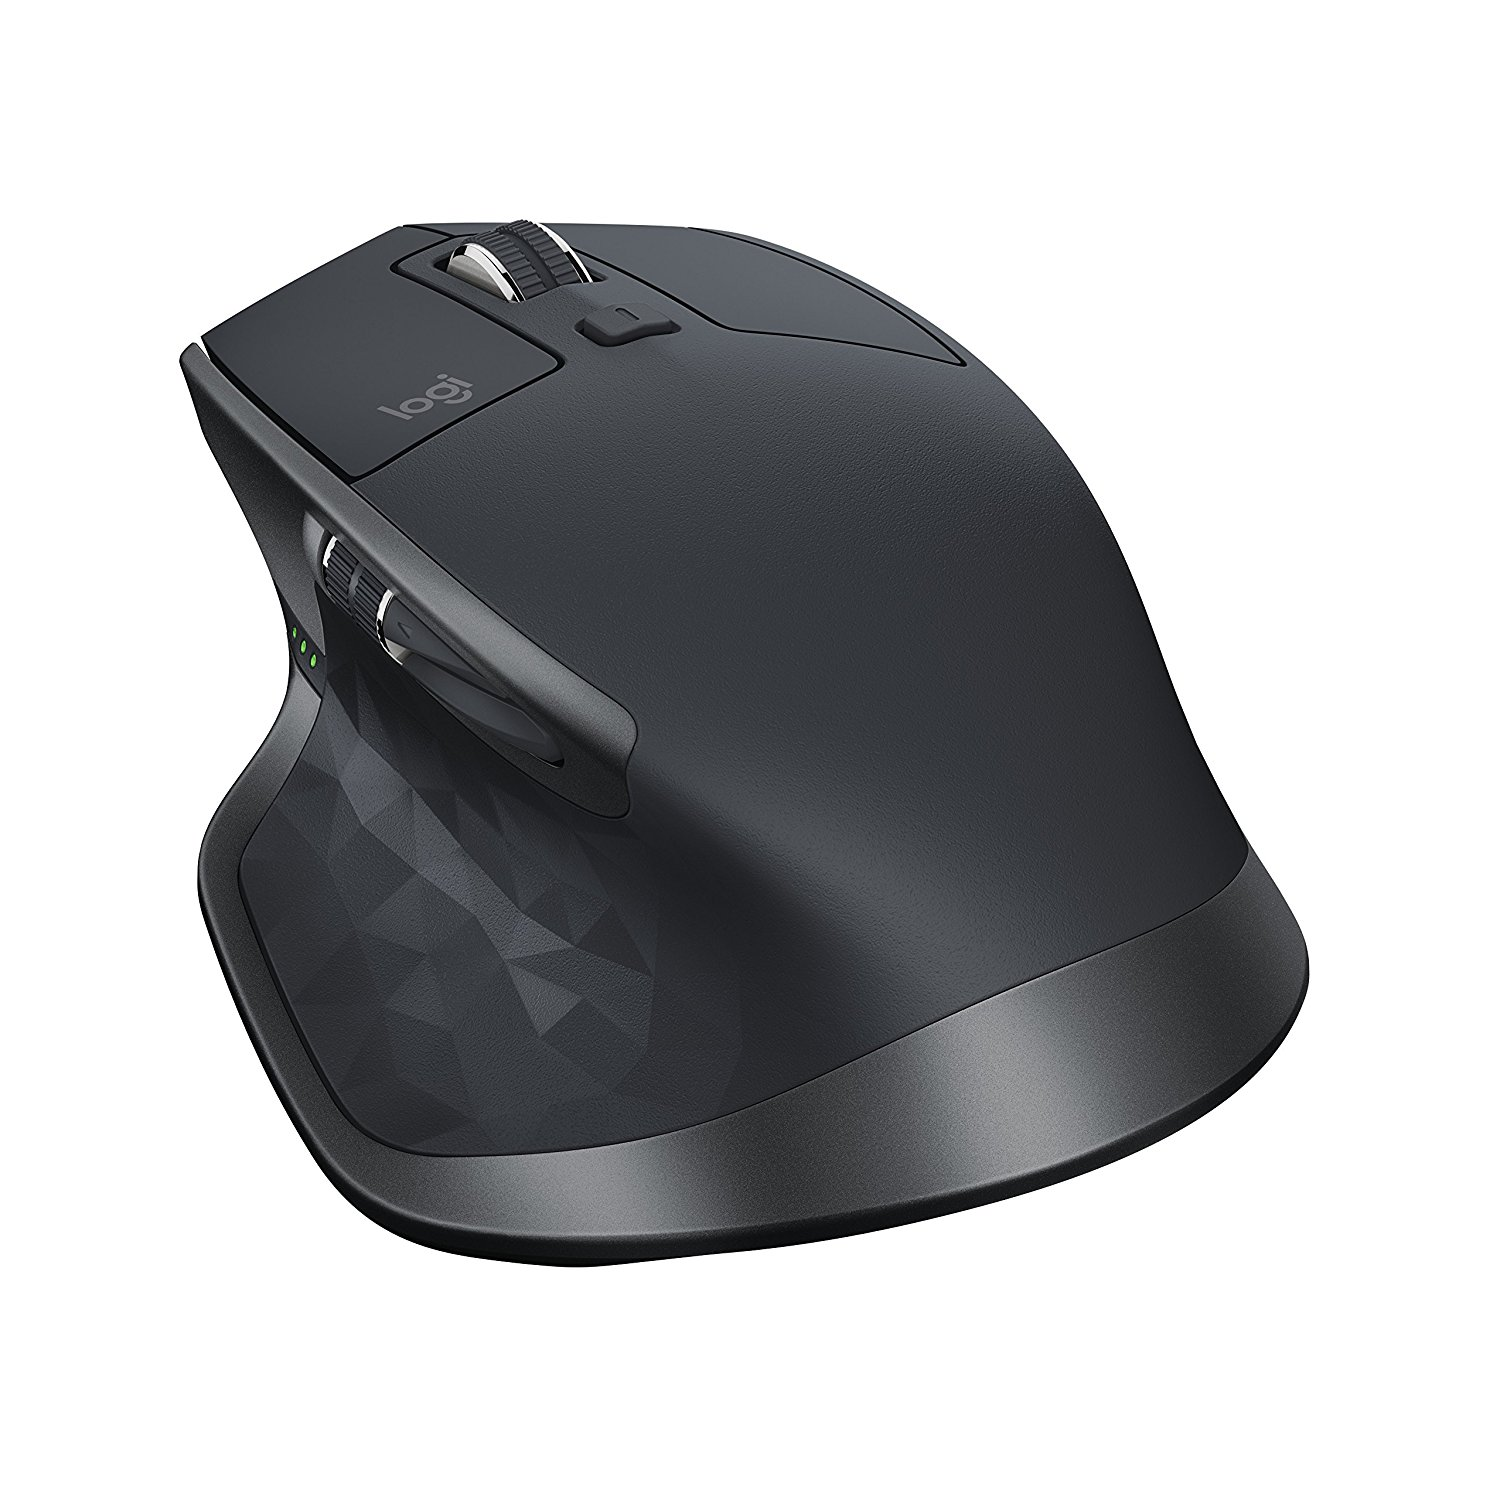 The [Logitech MX Master 2S](https://www.amazon.com/Logitech-Wireless-Cross-Computer-Control-Sharing/dp/B071YZJ1G1/ref=sr_1_2?sr=8-2&ie=UTF8&keywords=logitech%2Bmx%2Bmaster%2B2s&tag=toolstoysdeals-20&qid=1500294416) was just announced, but is on its first official sale.